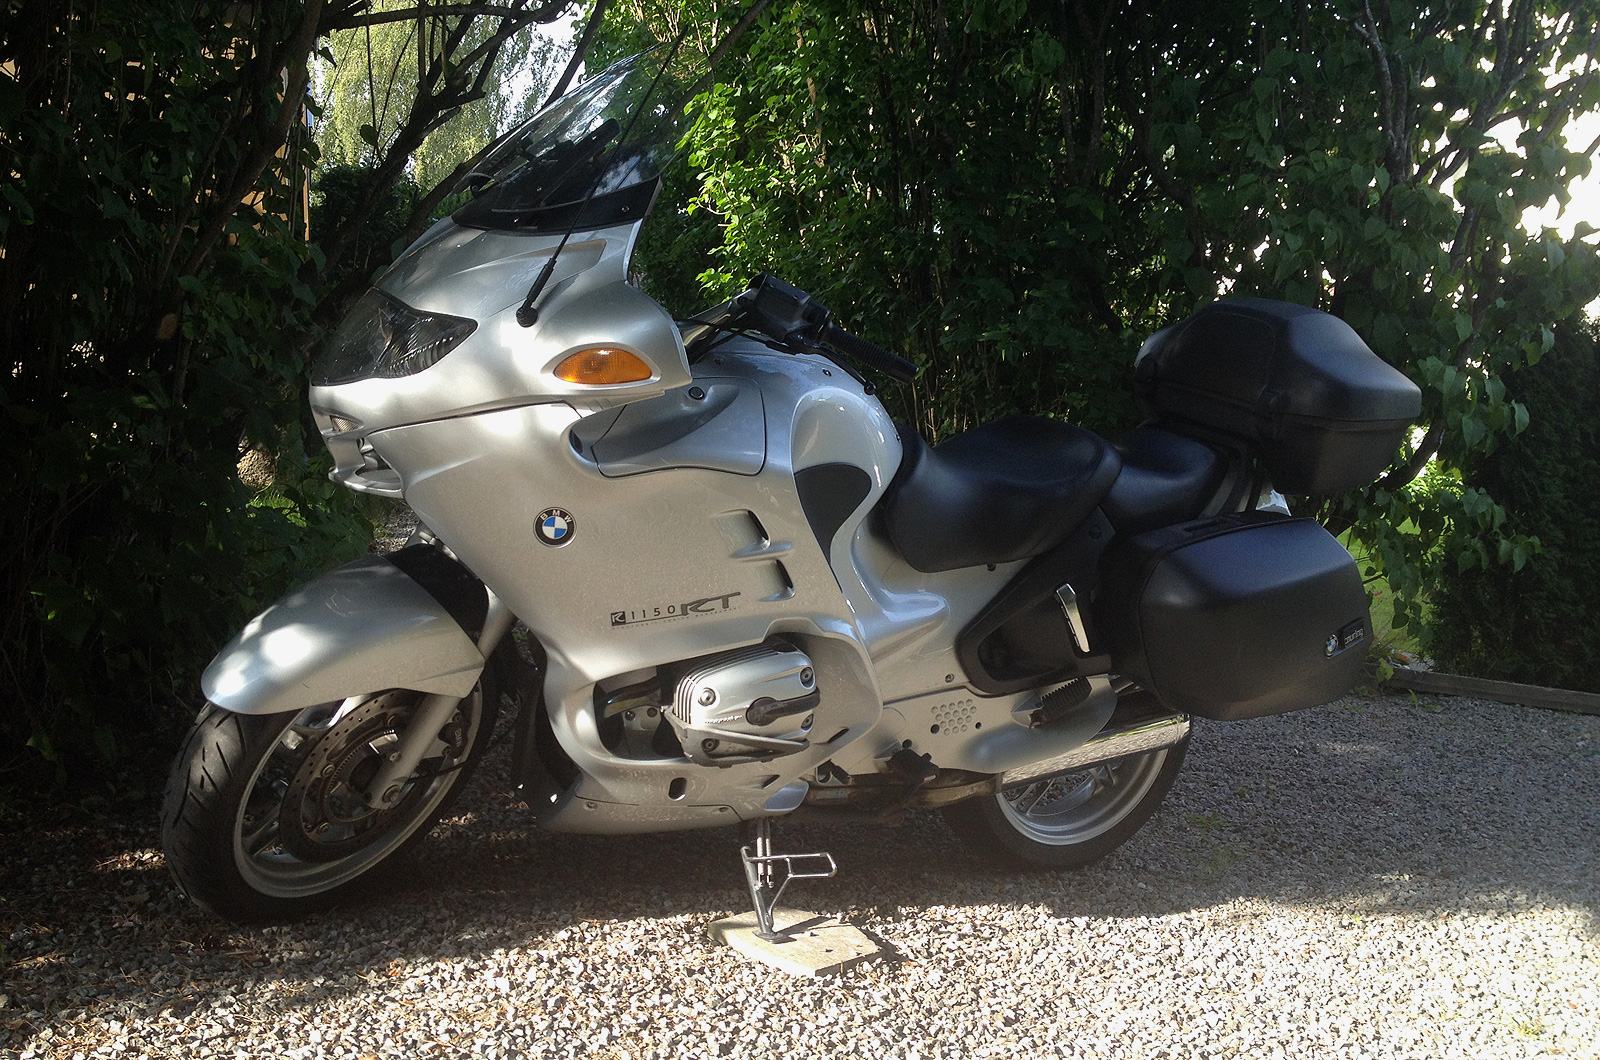 BMW R1150RT - 2003 model picture